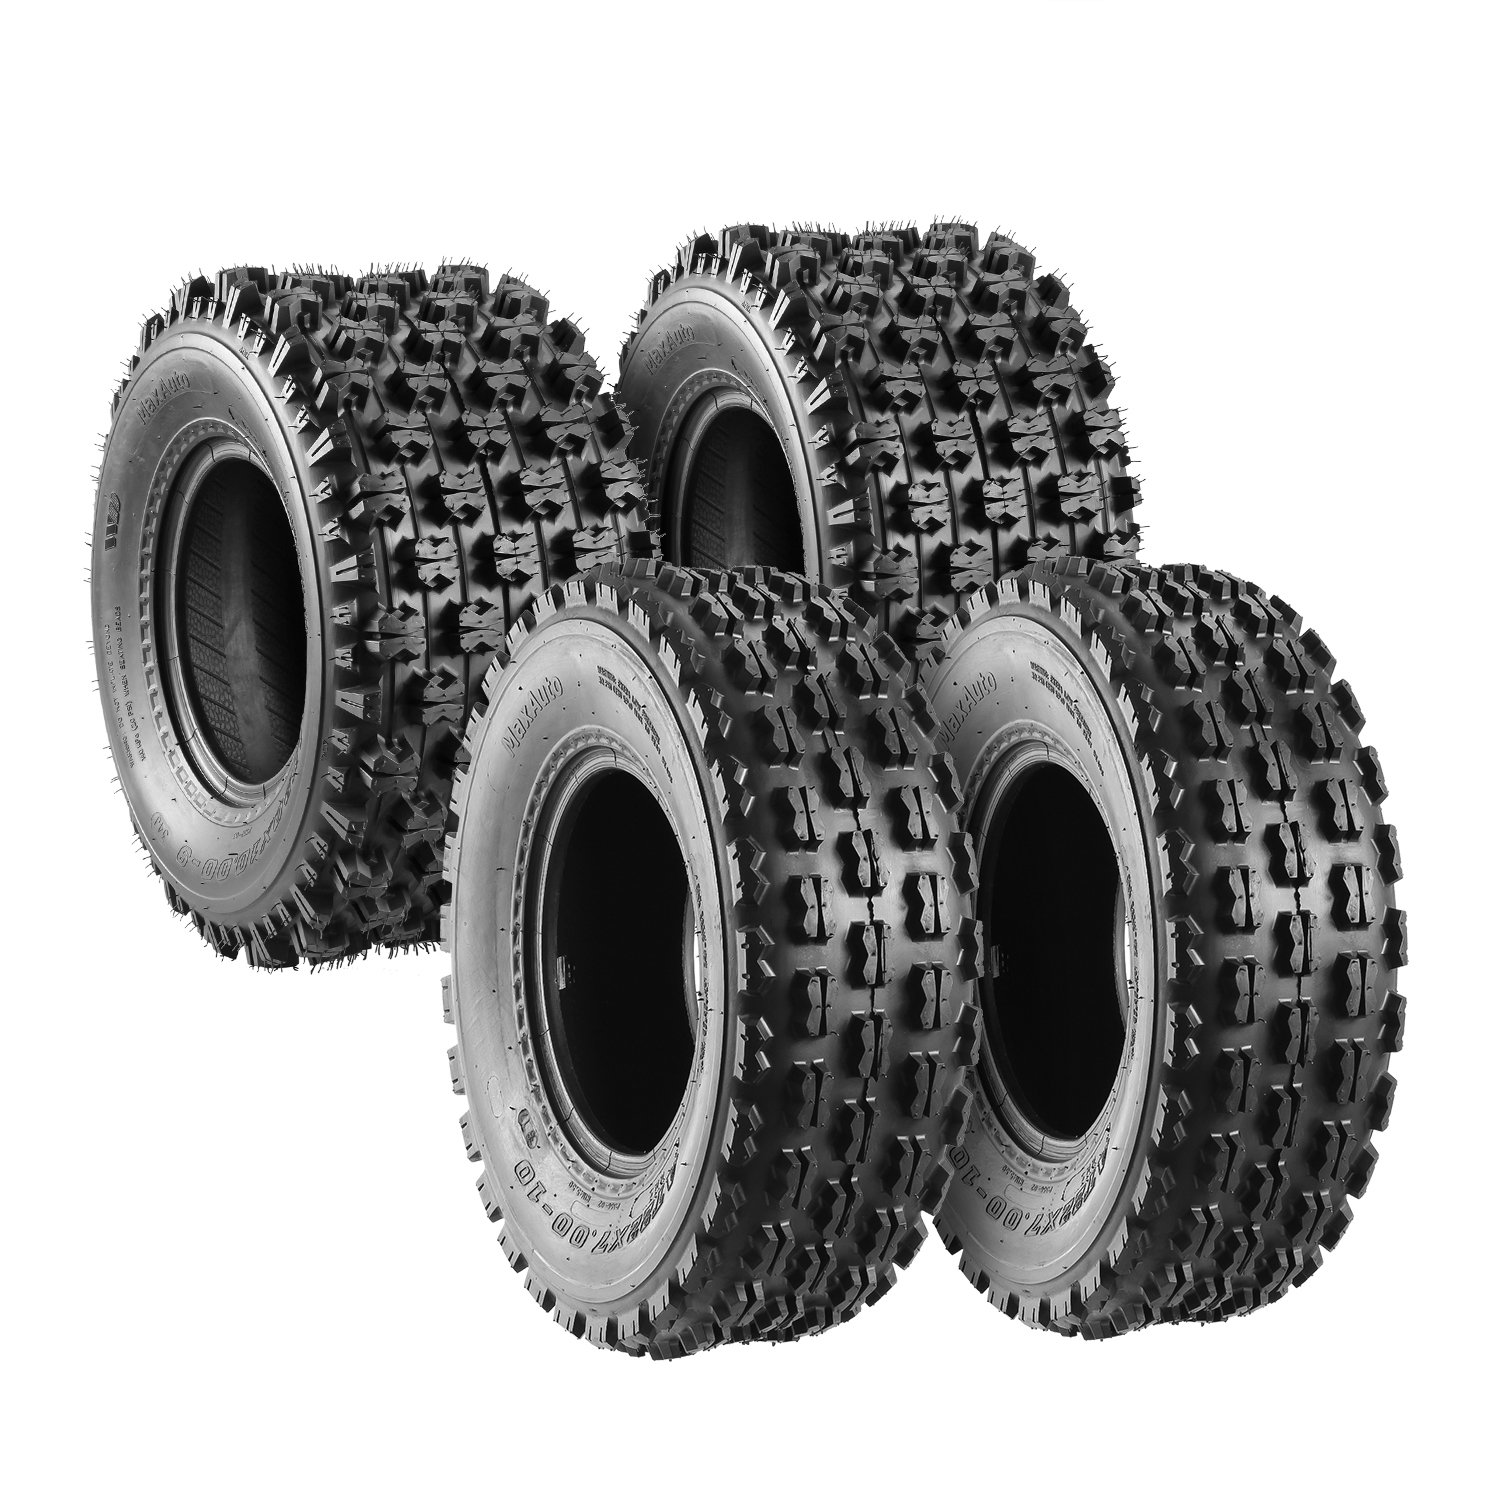 Set of 4 Sport ATV Tires 22x7-10 Front & 20x10-9 Rear /4PR - 10077/10081 by MaxAuto